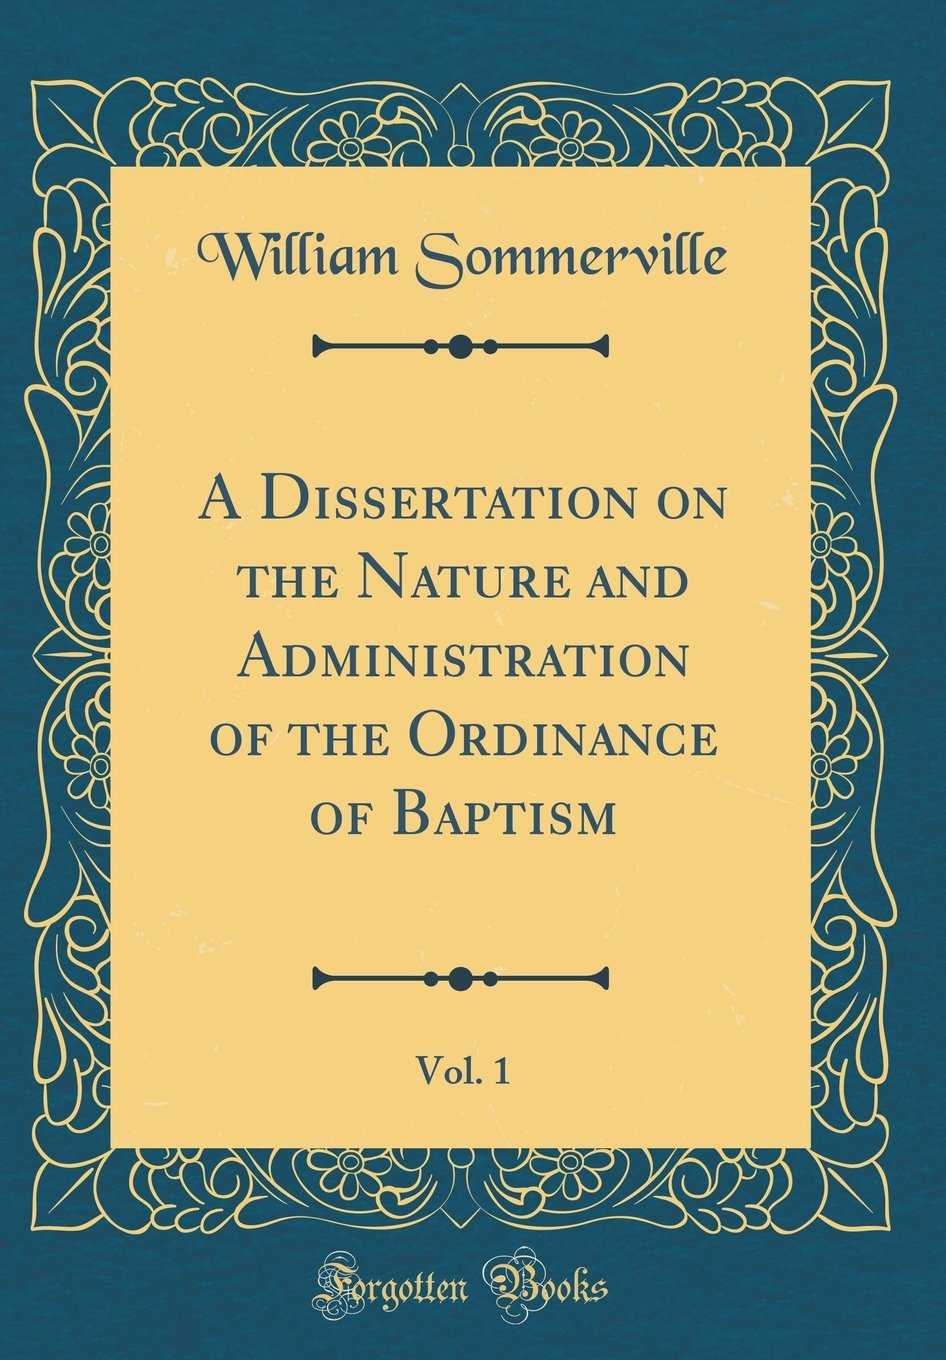 Download A Dissertation on the Nature and Administration of the Ordinance of Baptism, Vol. 1 (Classic Reprint) PDF